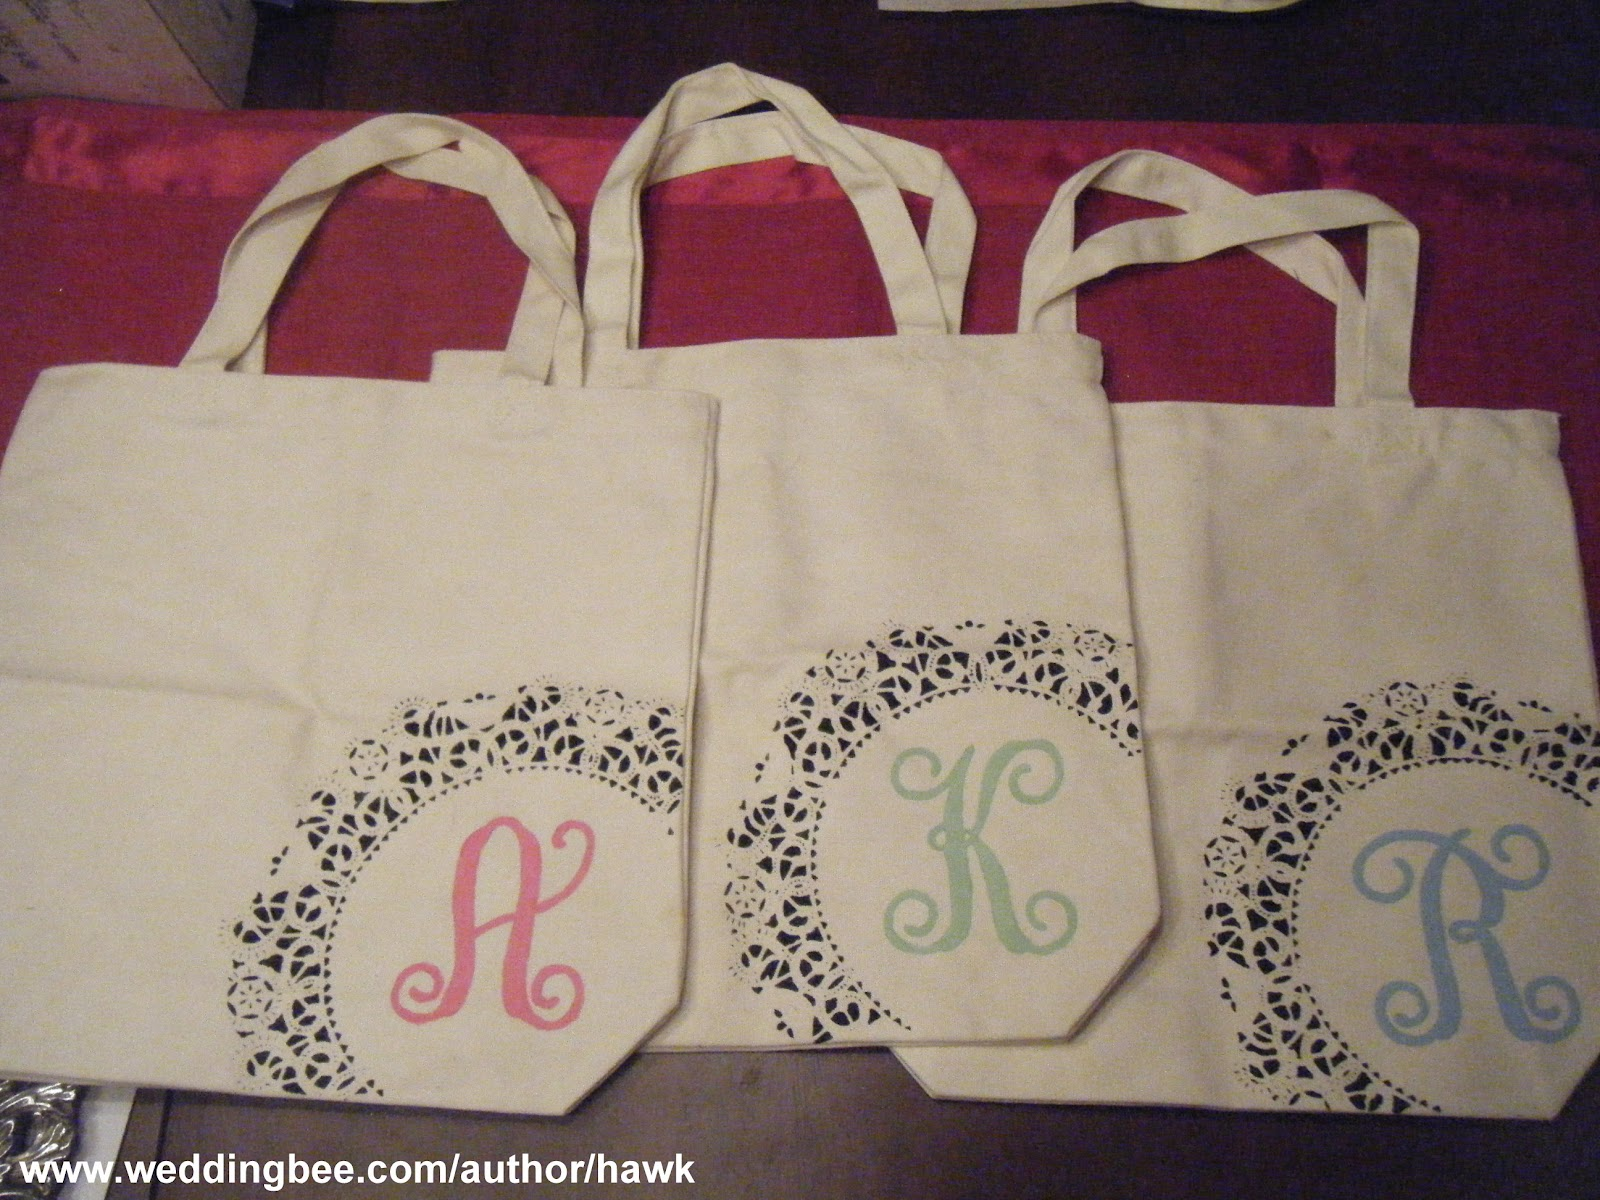 Gifting the Bridesmaids: DIY Monogram Totes - Weddingbee